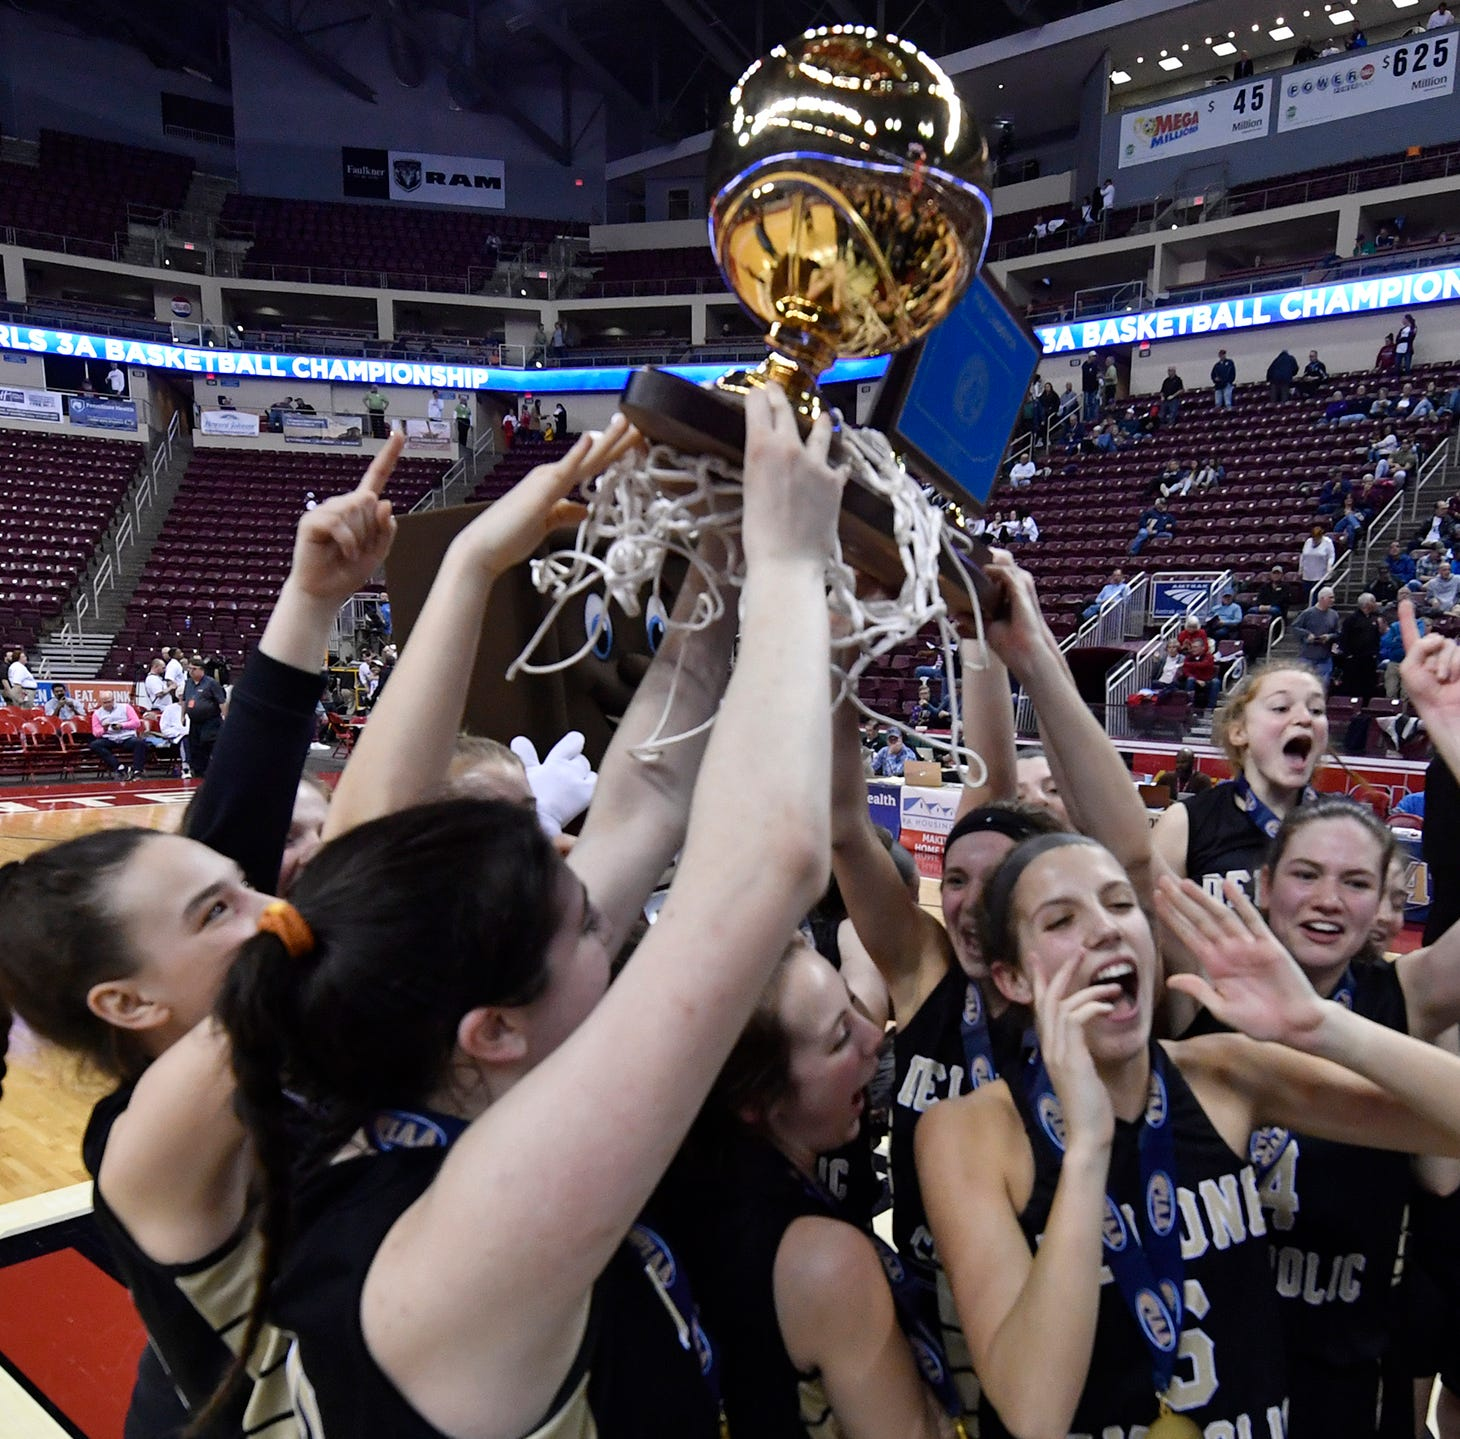 Delone Catholic girls pull off stunning upset in PIAA Class 3-A state title game